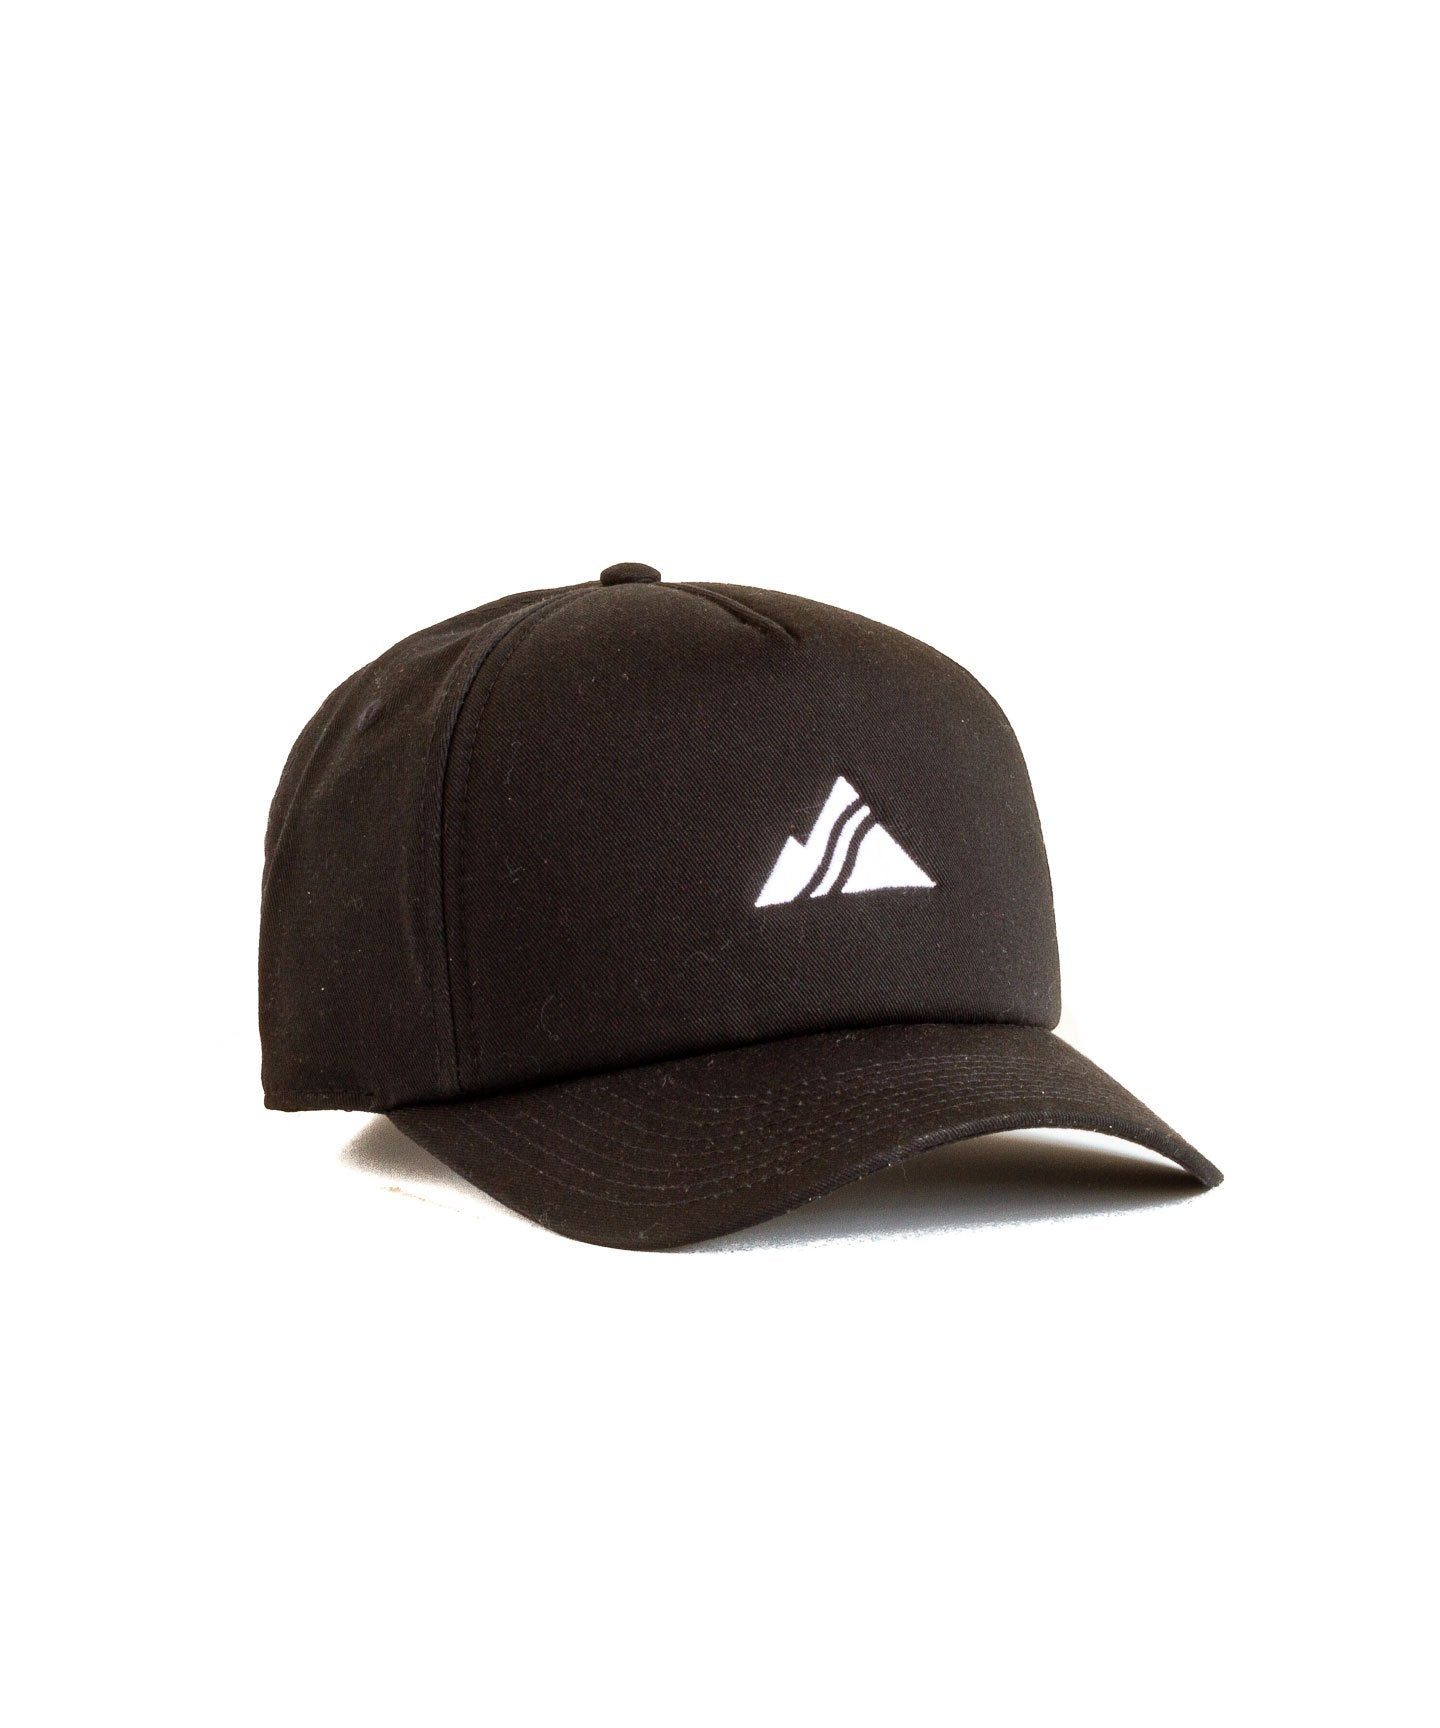 Mountains 5 Panel